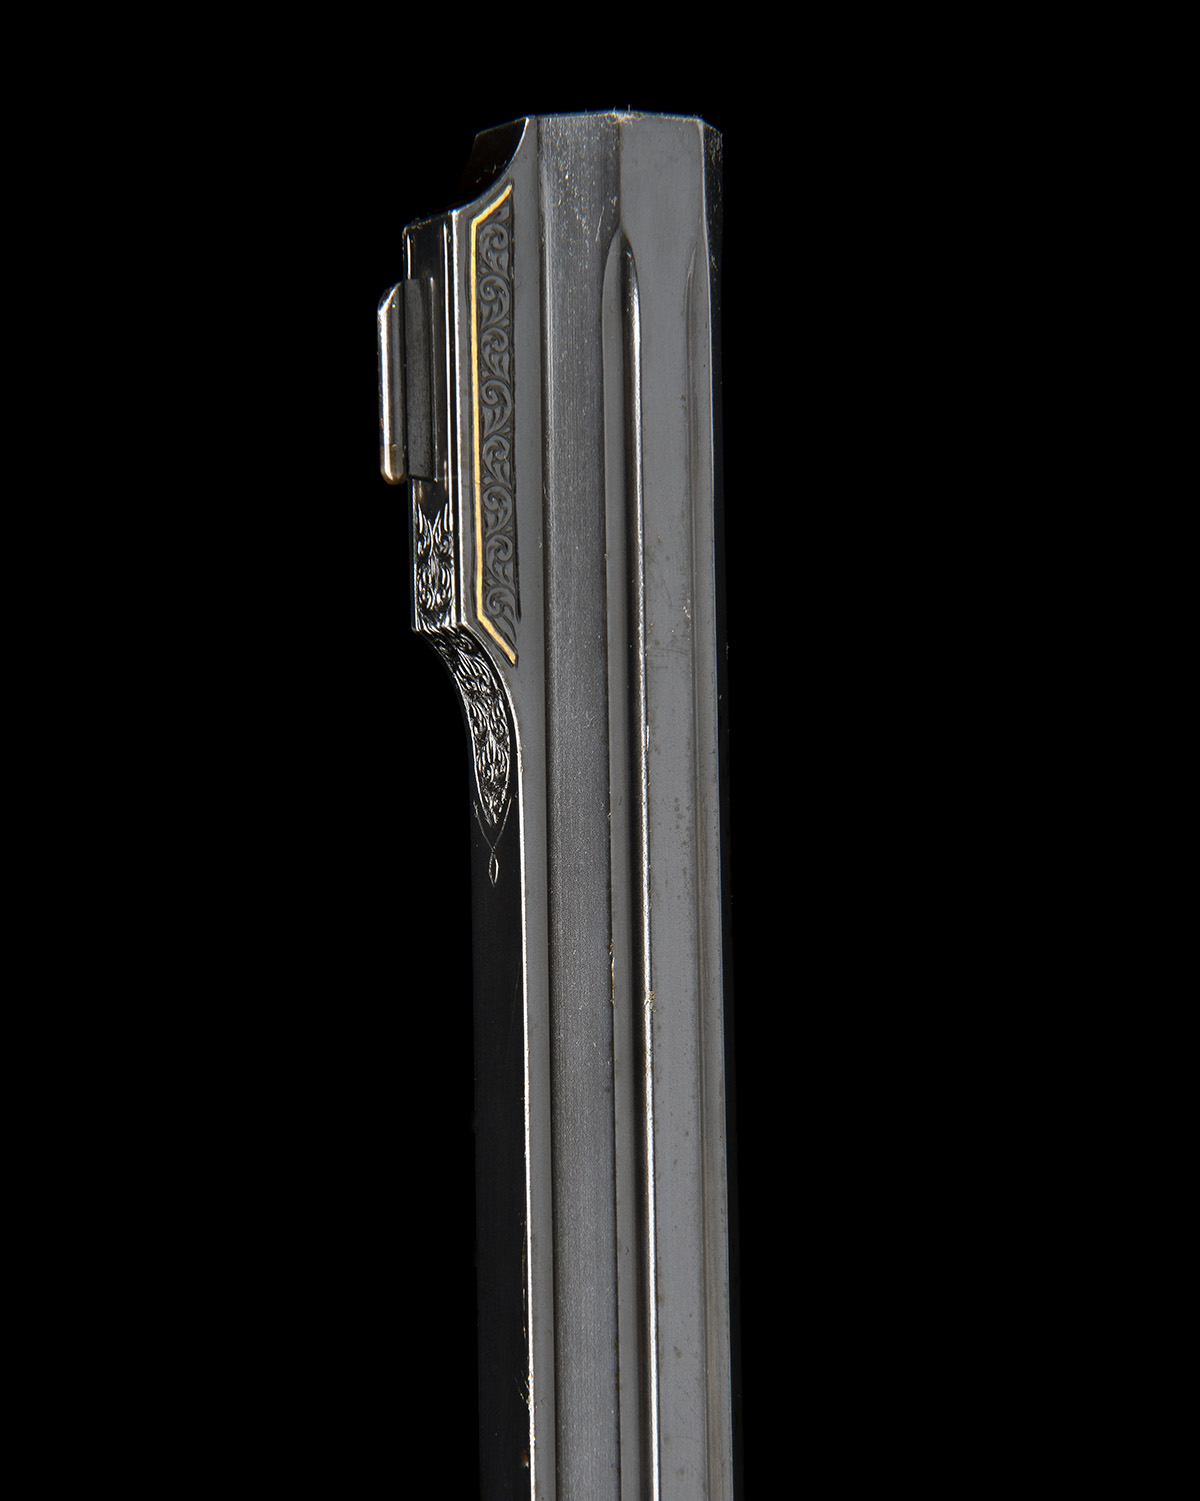 H. SCHEIRING A .300 WIN. MAG. JAEGER PATENT SINGLE-BARRELLED SIDEPLATED PUSH-FORWARD UNDERLEVER - Image 11 of 13